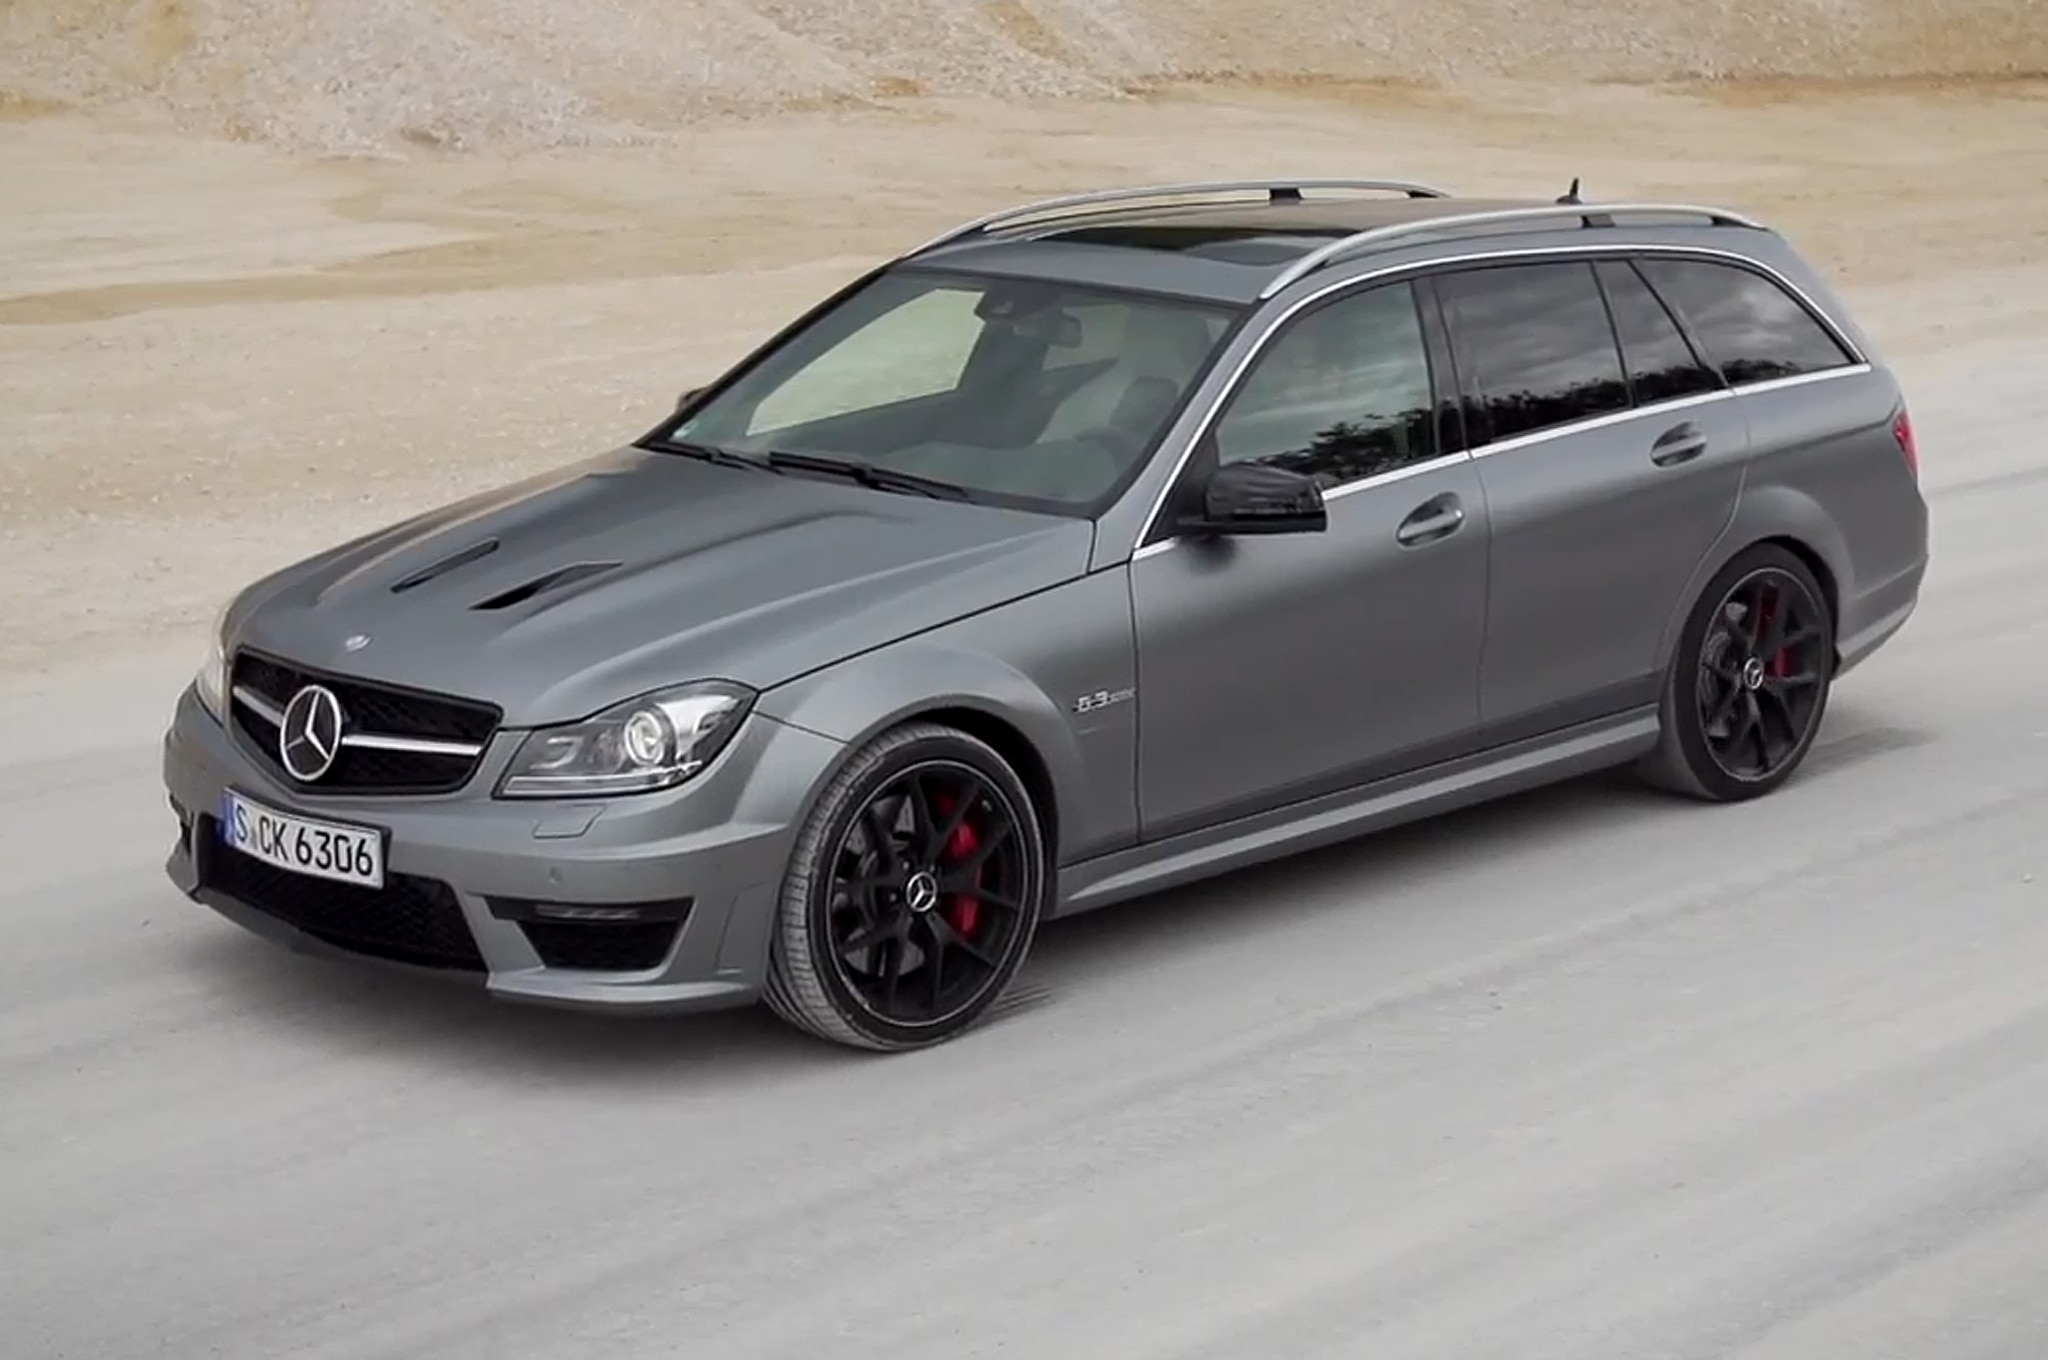 Feature flick 2014 mercedes benz c63 amg edition 507 wagon for Mercedes benz c63 amg wagon